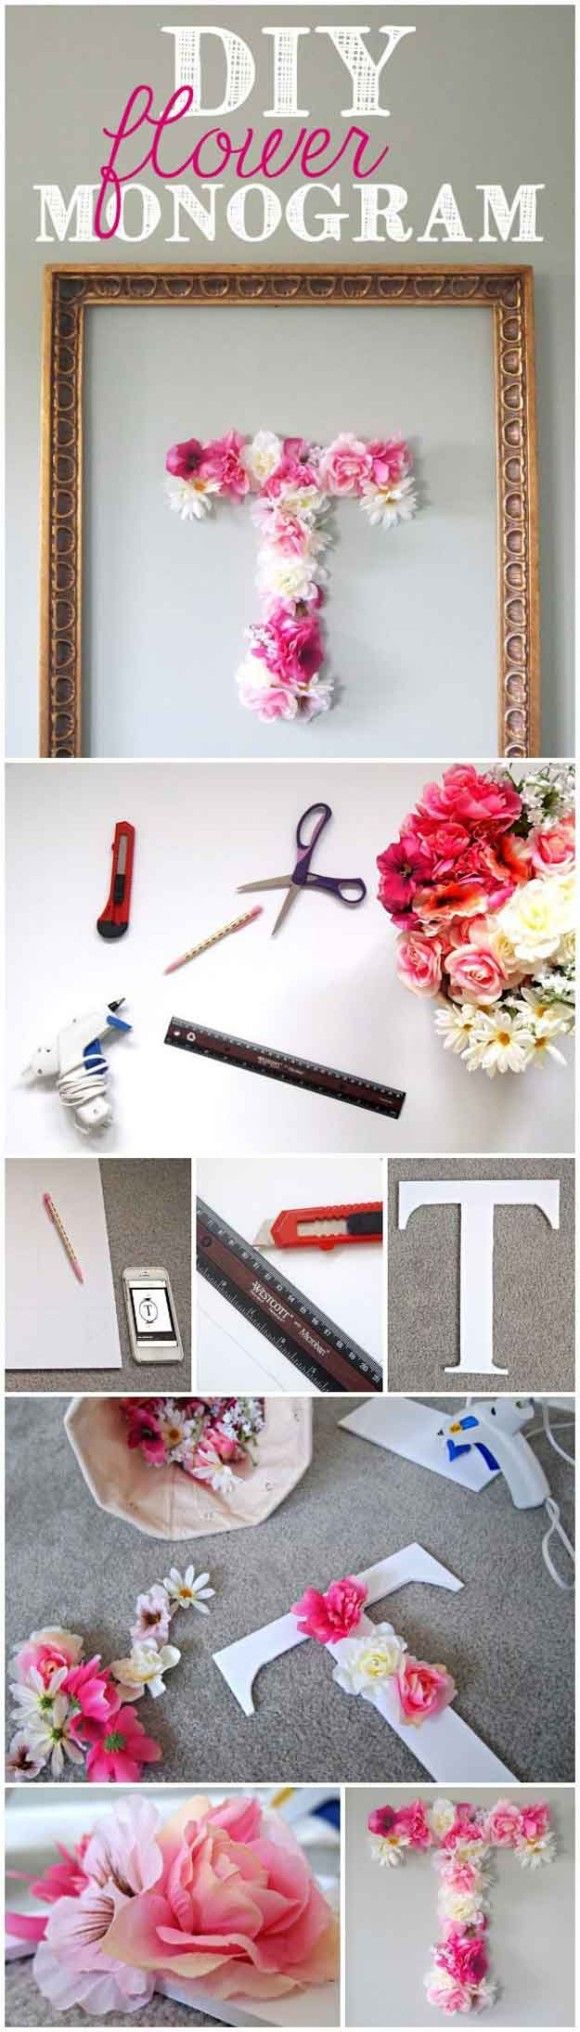 25  unique Diy room ideas ideas on Pinterest   Cool room decor  Easy diy  room decor and DIY decorations for your room. 25  unique Diy room ideas ideas on Pinterest   Cool room decor